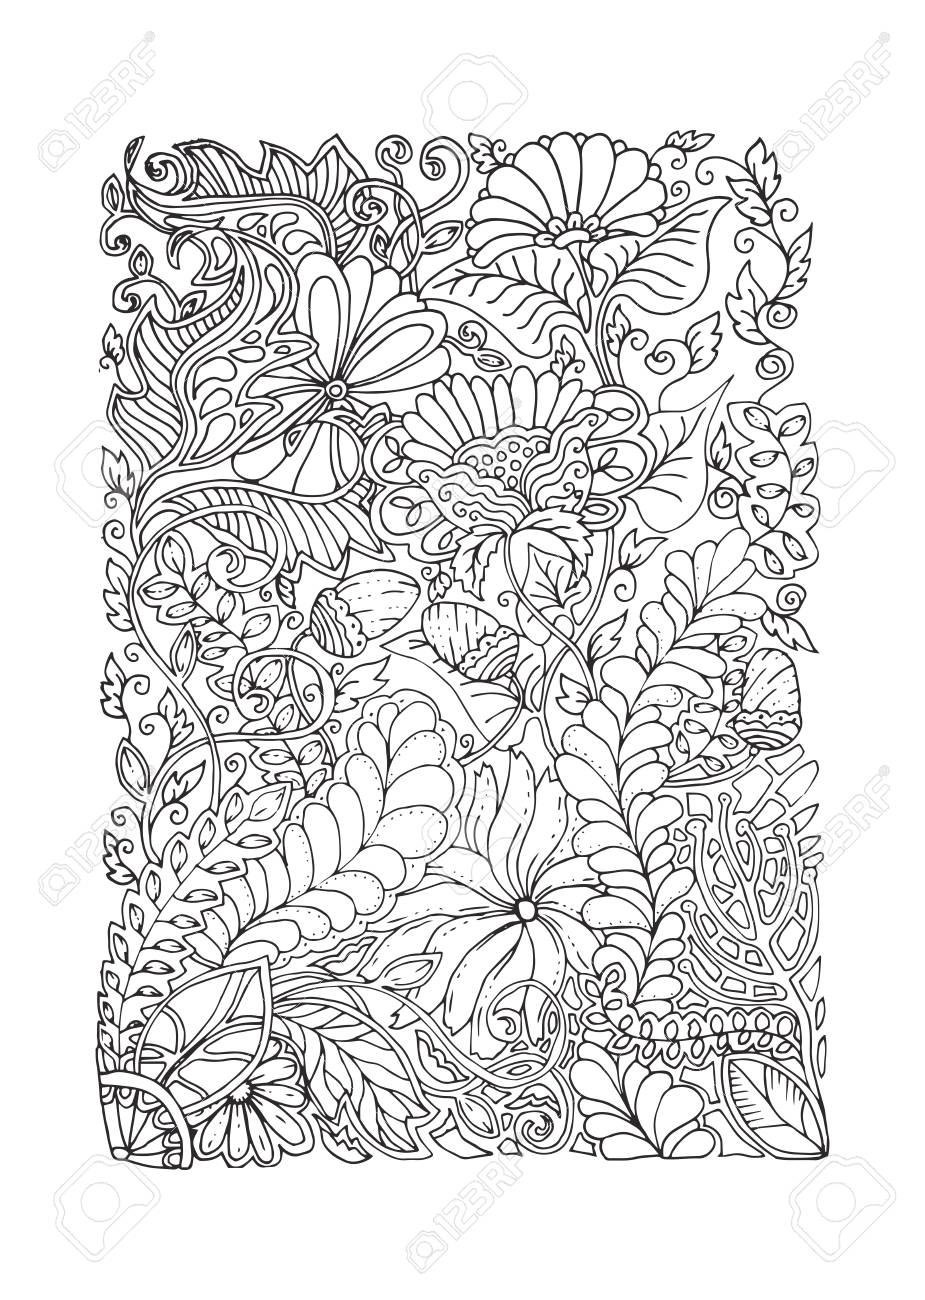 Adult Coloring Page Spring Design Black And White Color Antistress Calming Pattern Monochrome